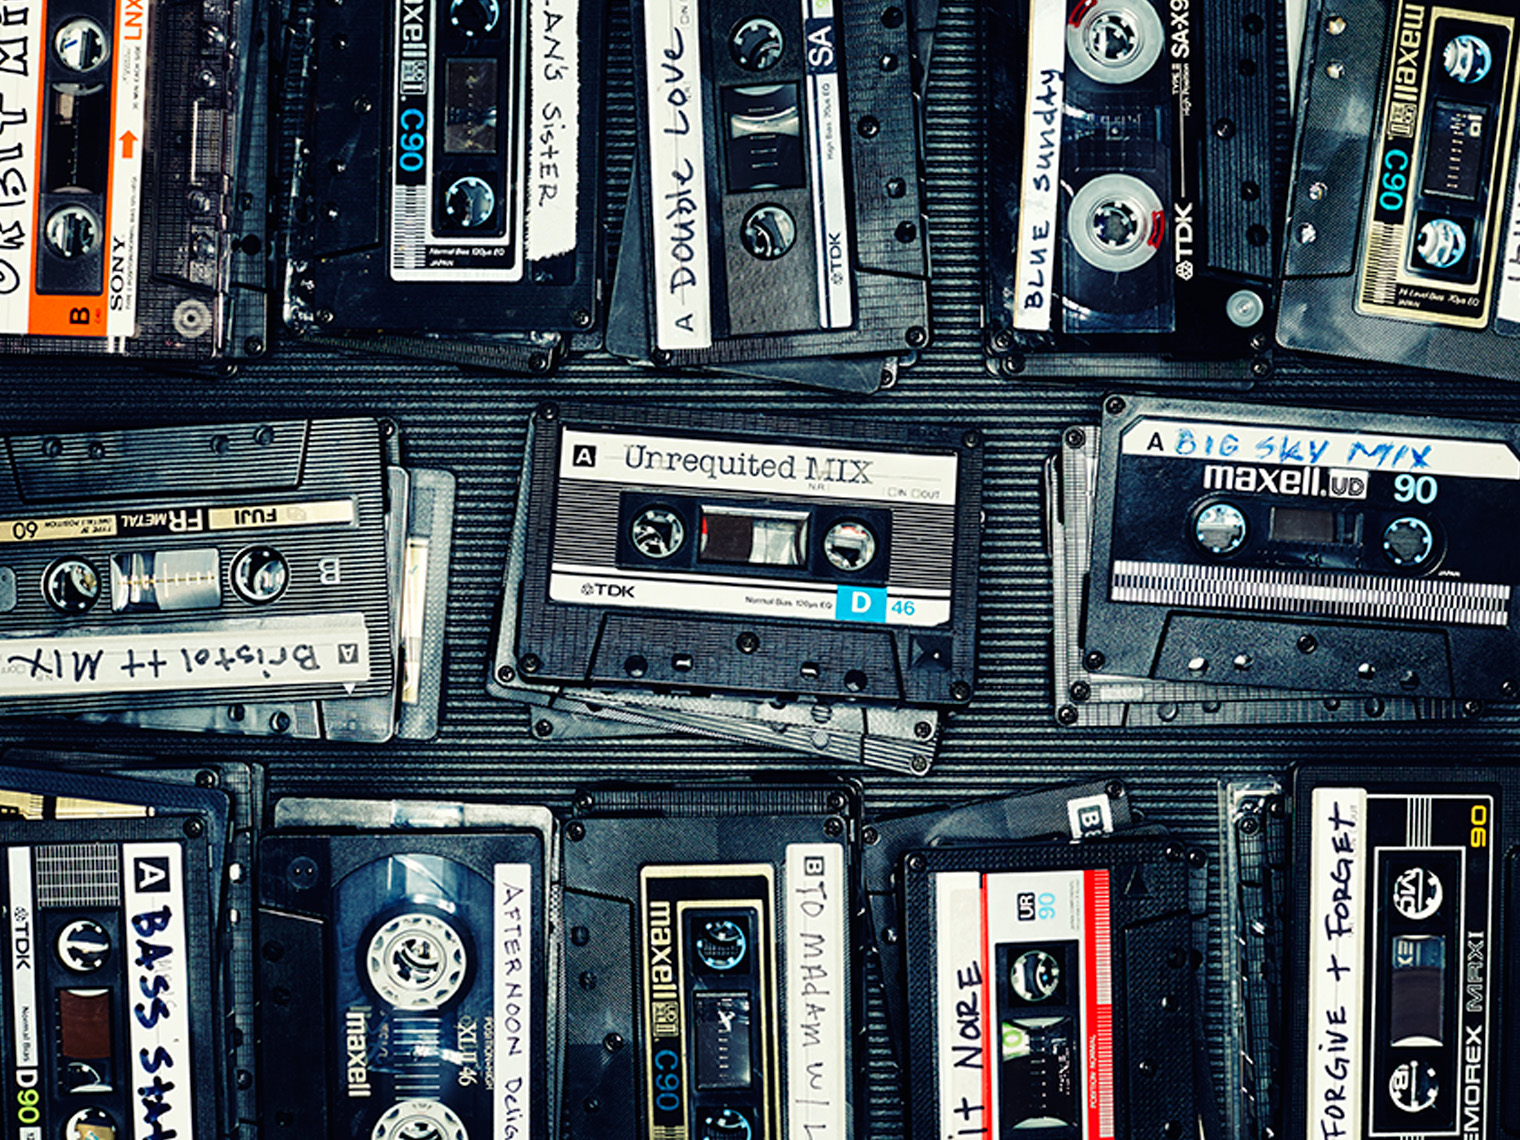 mix tapes - still life photographer san francisco